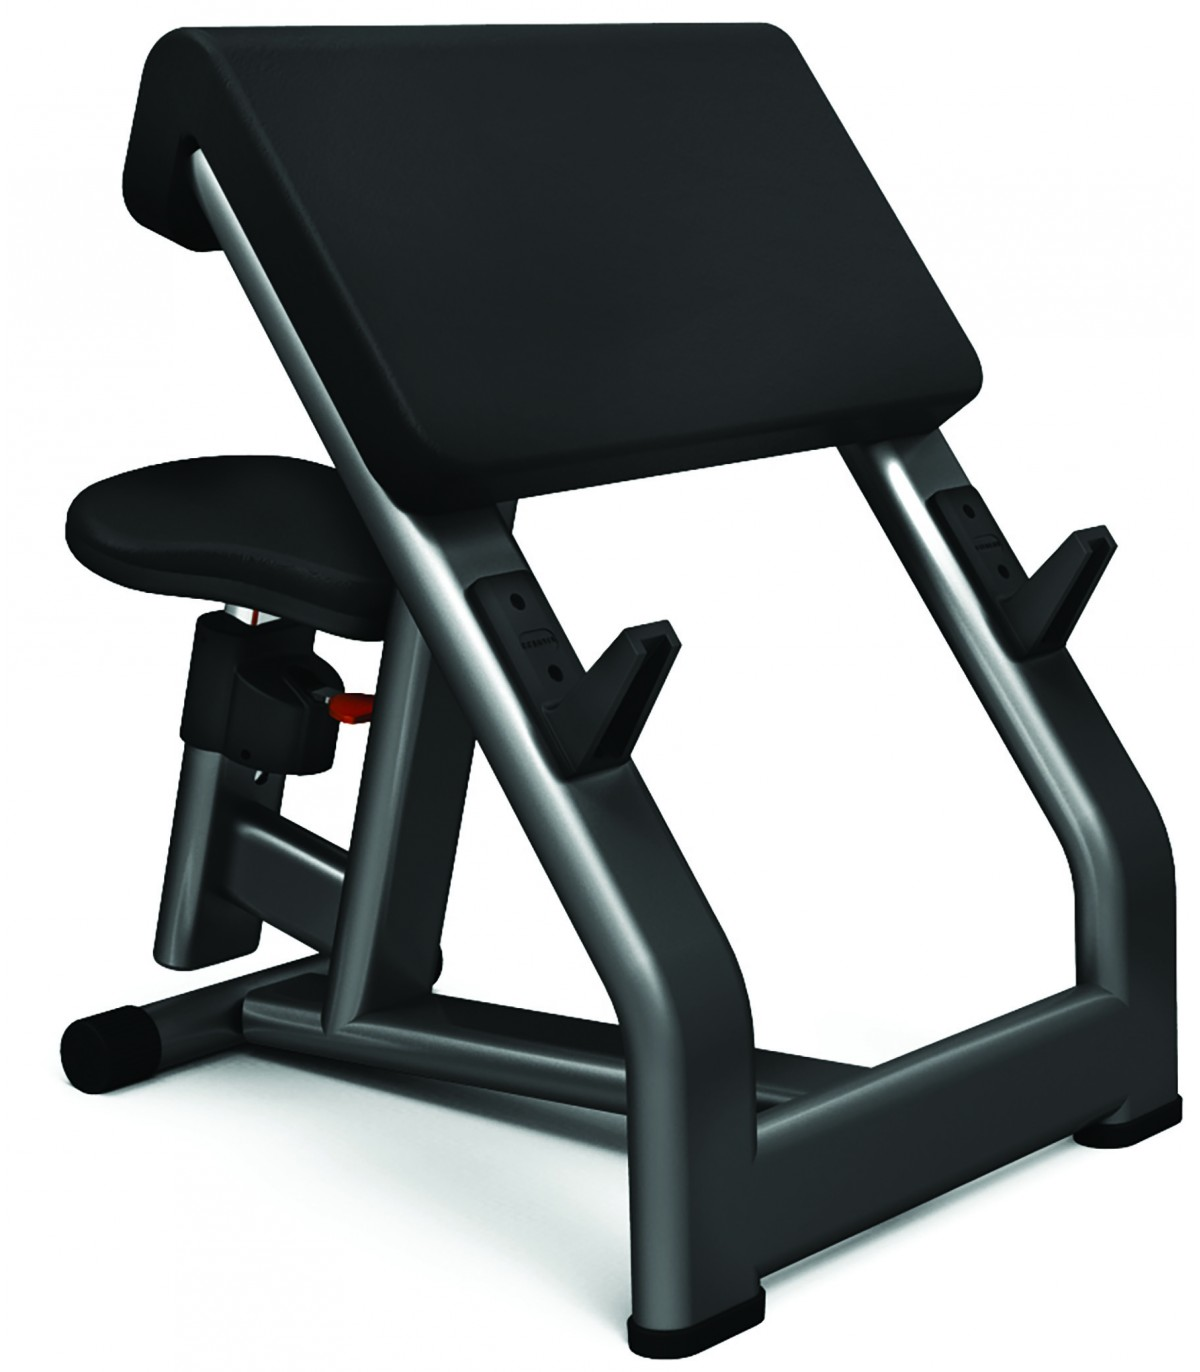 Banc de musculation professionnel larry scott care fitness - Banc musculation professionnel ...